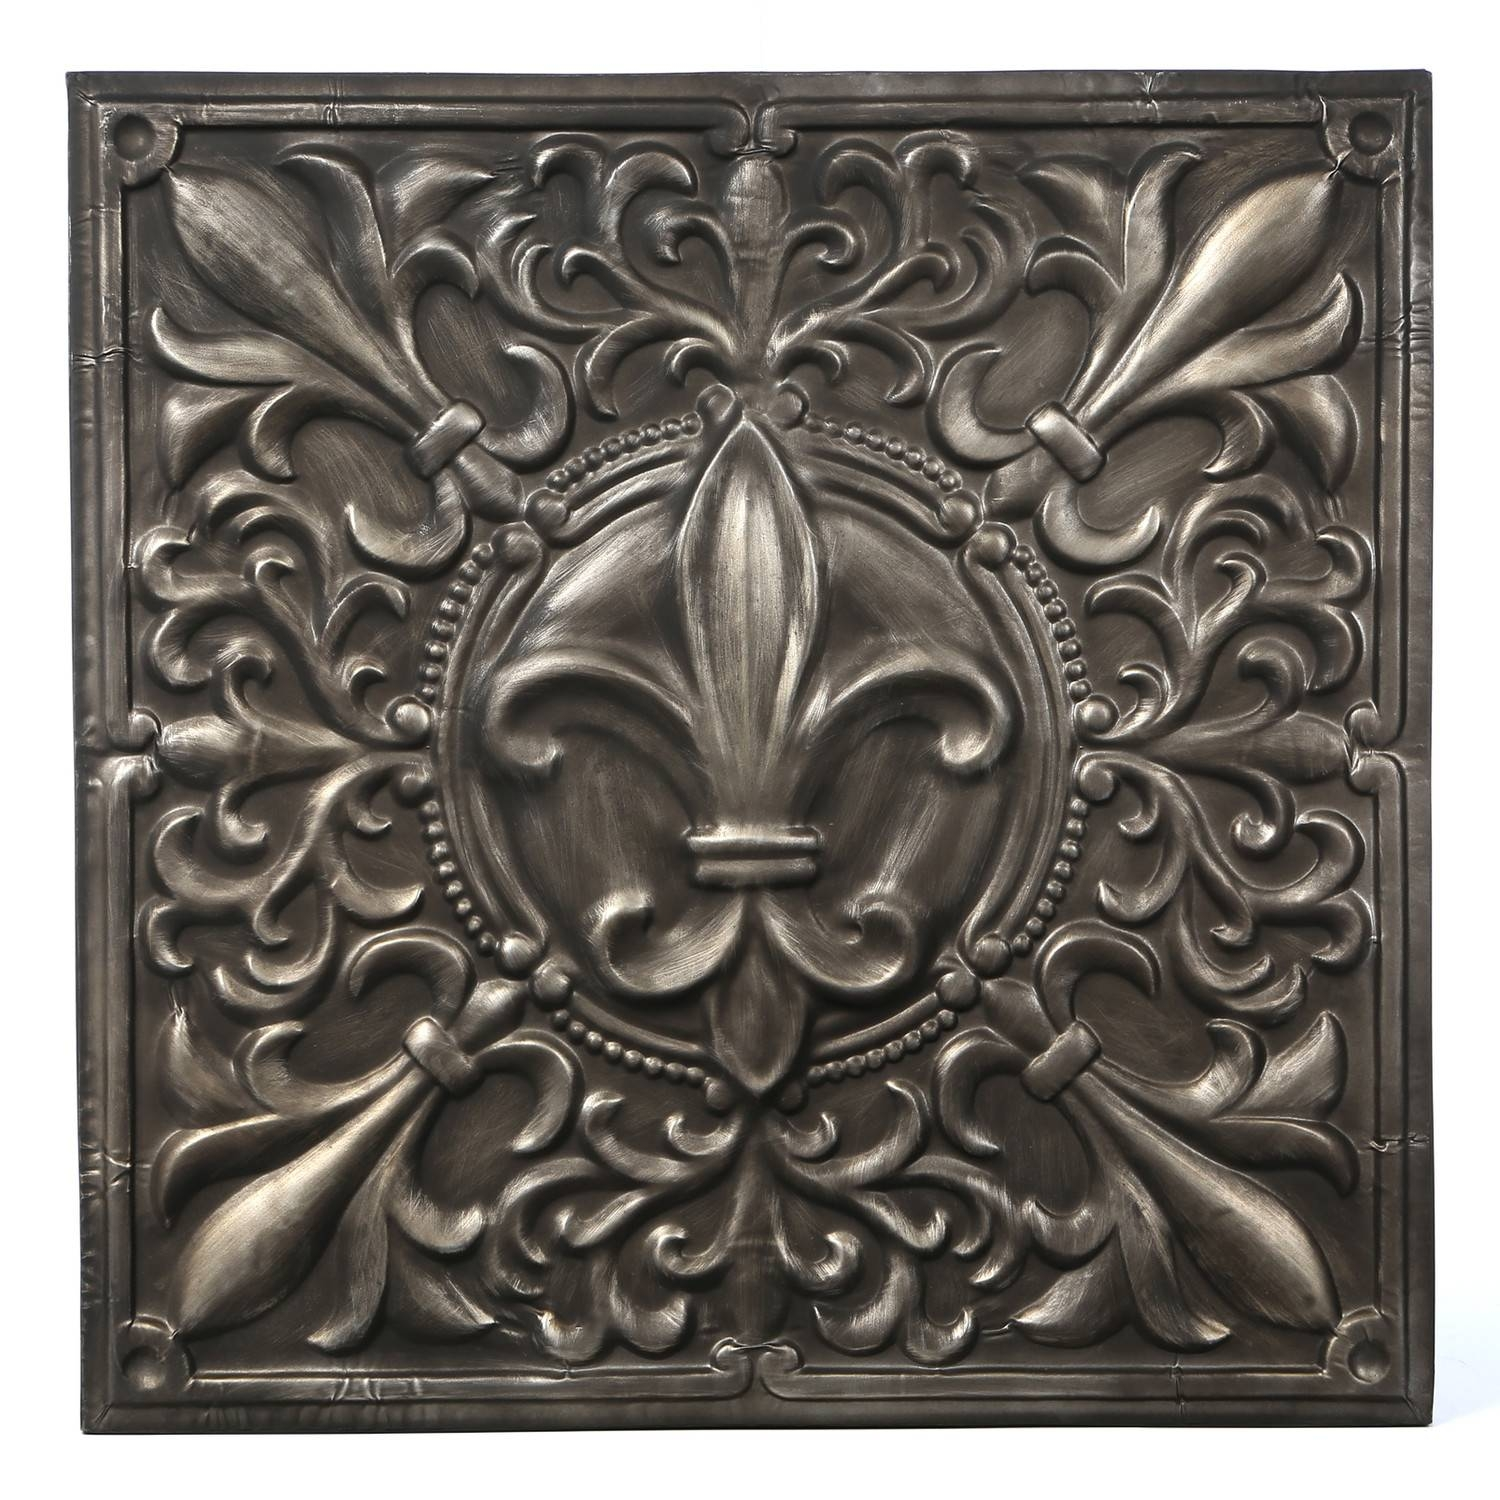 25 ideas of metal fleur de lis wall art. Black Bedroom Furniture Sets. Home Design Ideas